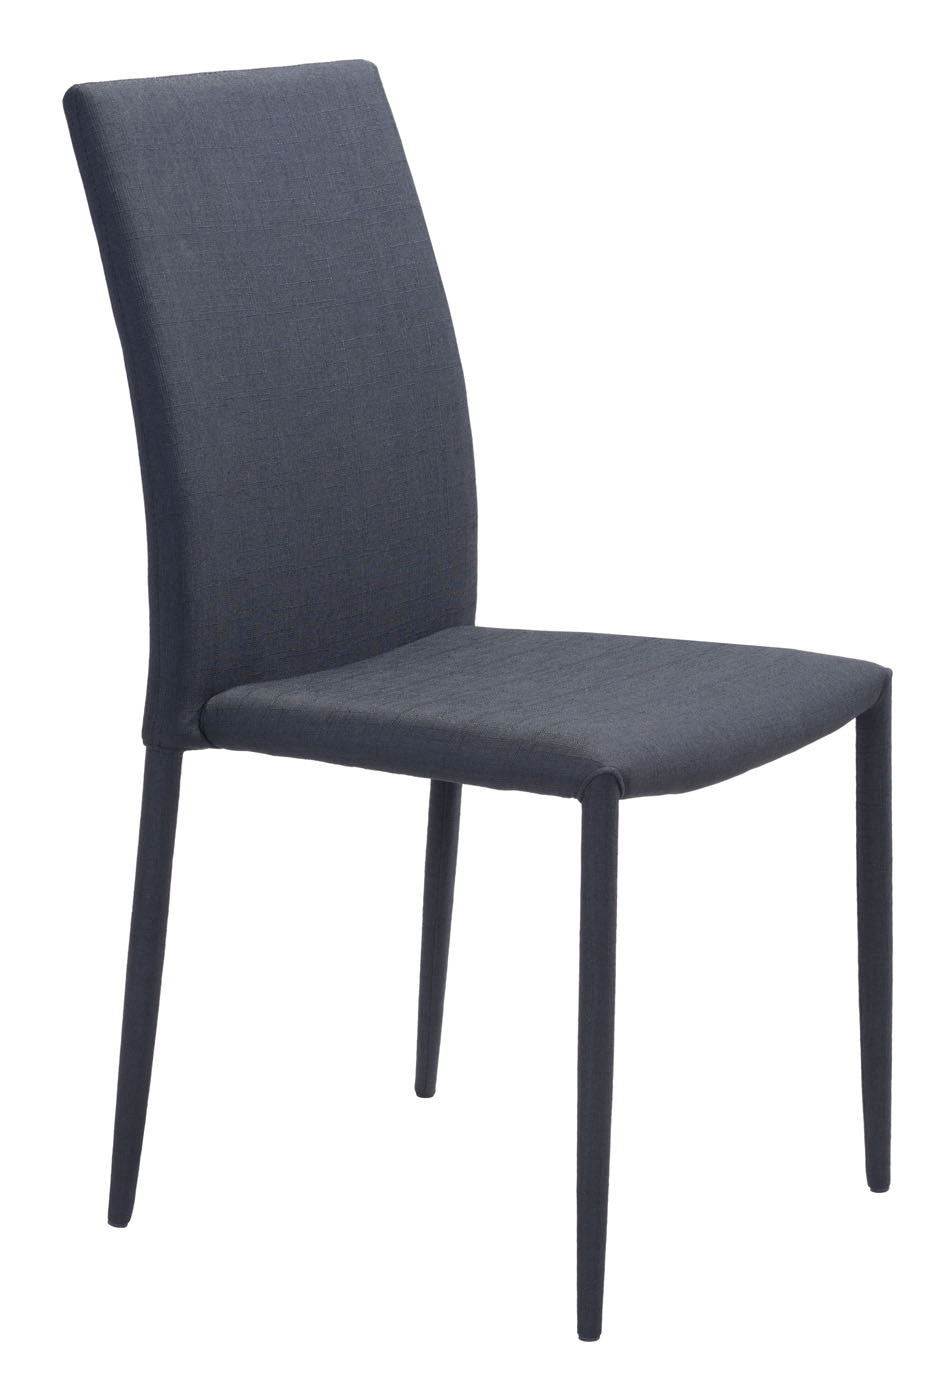 Confidence Dining Chair Black Set of 4